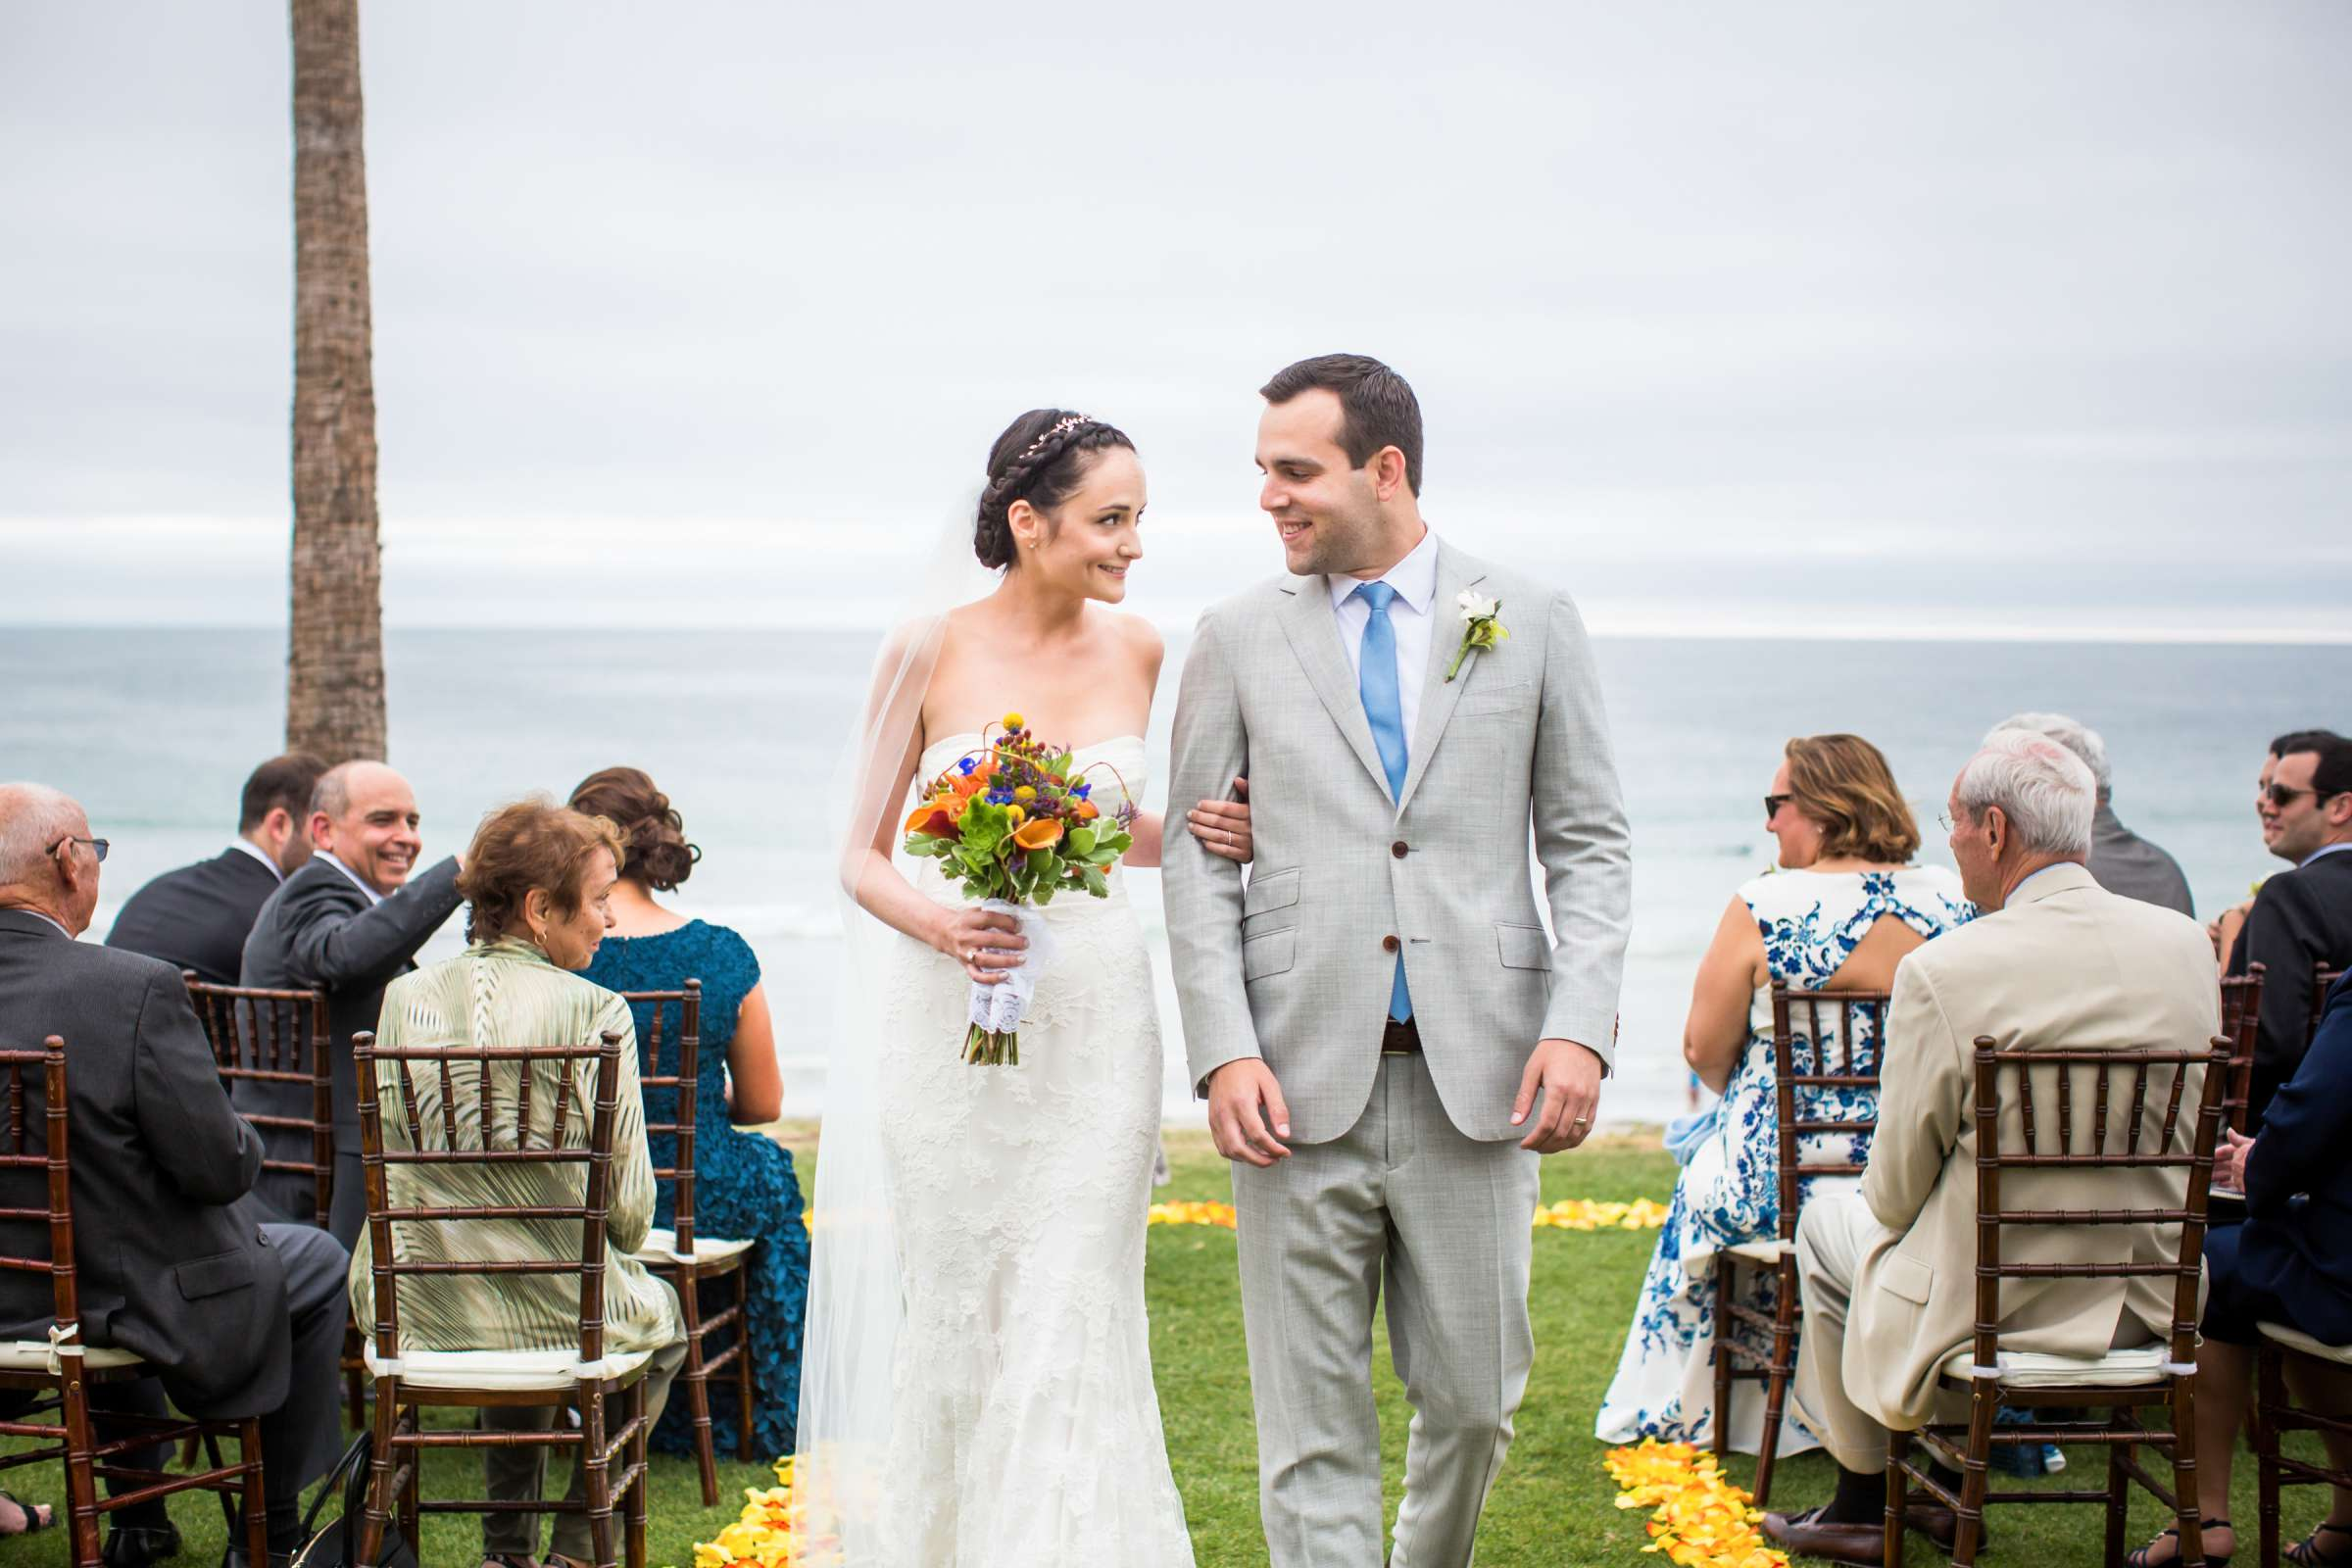 Scripps Seaside Forum Wedding coordinated by Francine Ribeau Events, Shaina and Christopher Wedding Photo #28 by True Photography